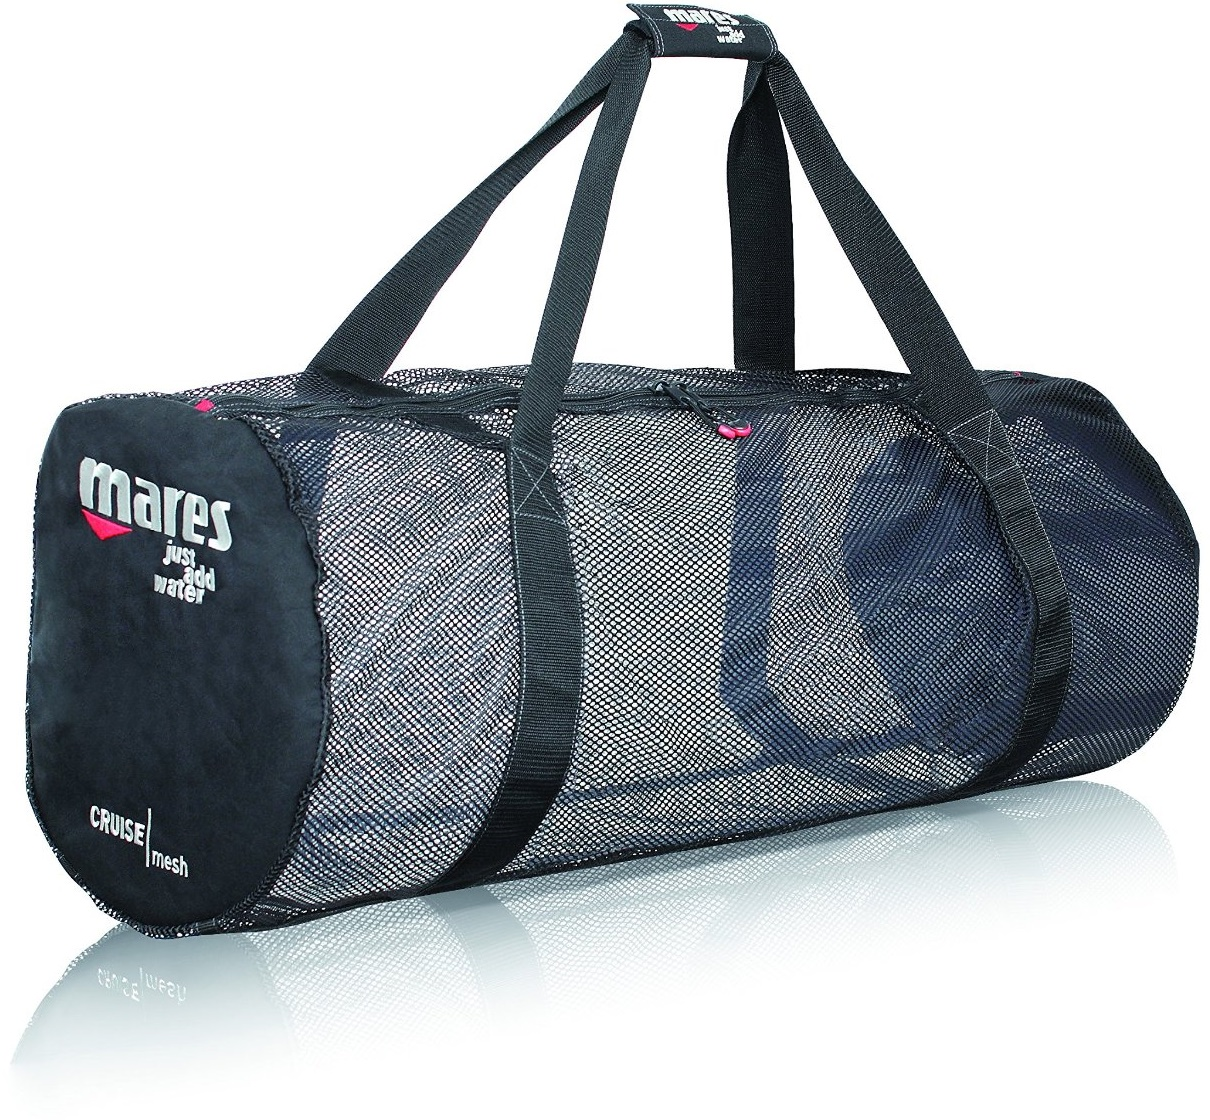 Mares Cruise Mesh Duffle Bag Dive Gear Bag